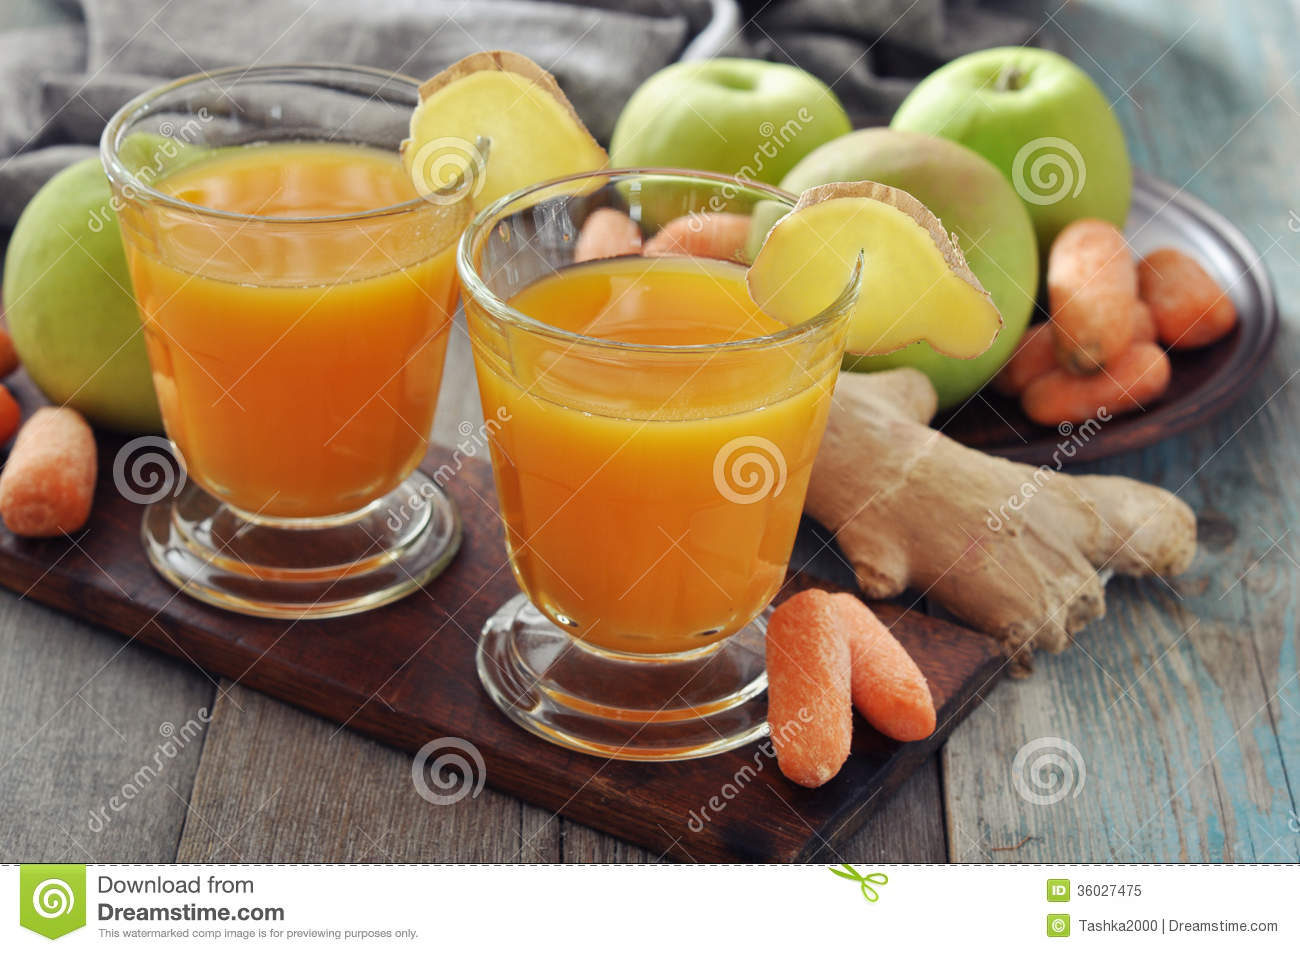 how to make ginger juice from fresh ginger